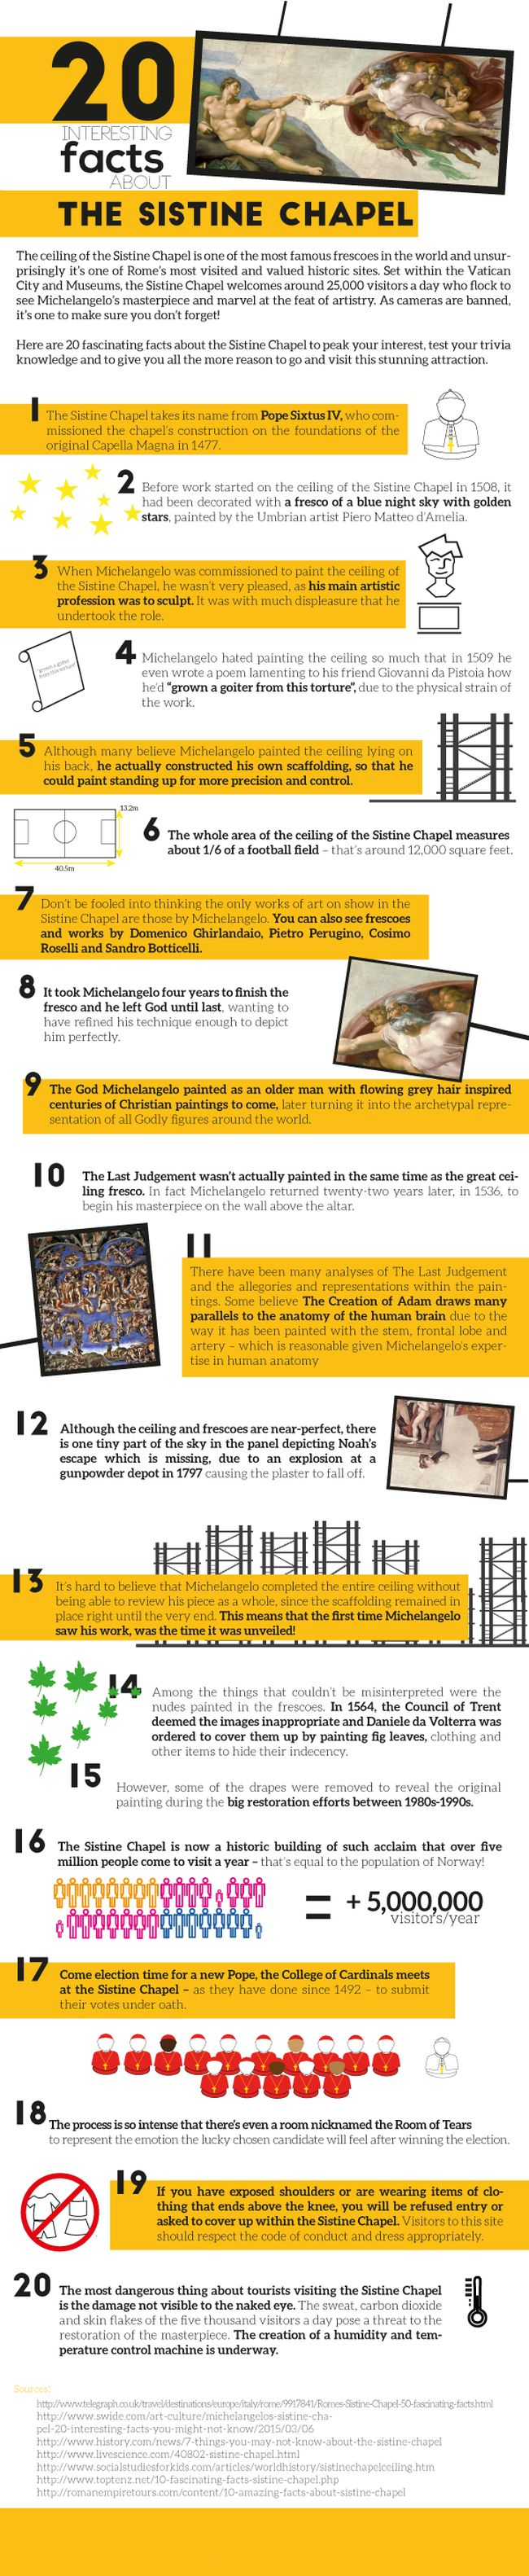 20_interesting_facts_about_the_sistine_chapel